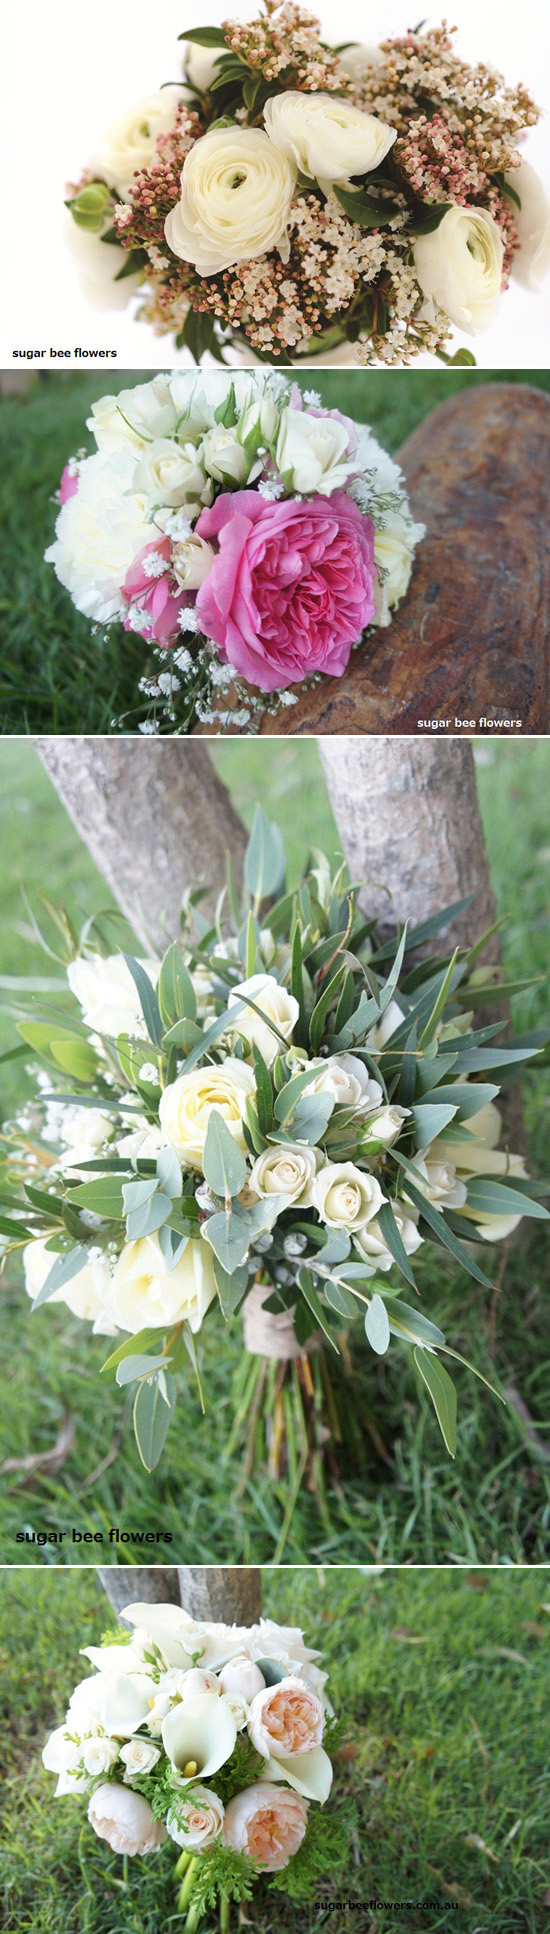 Beautiful smelling bridal bouquets Beautiful Smelling Flowers And Blooms